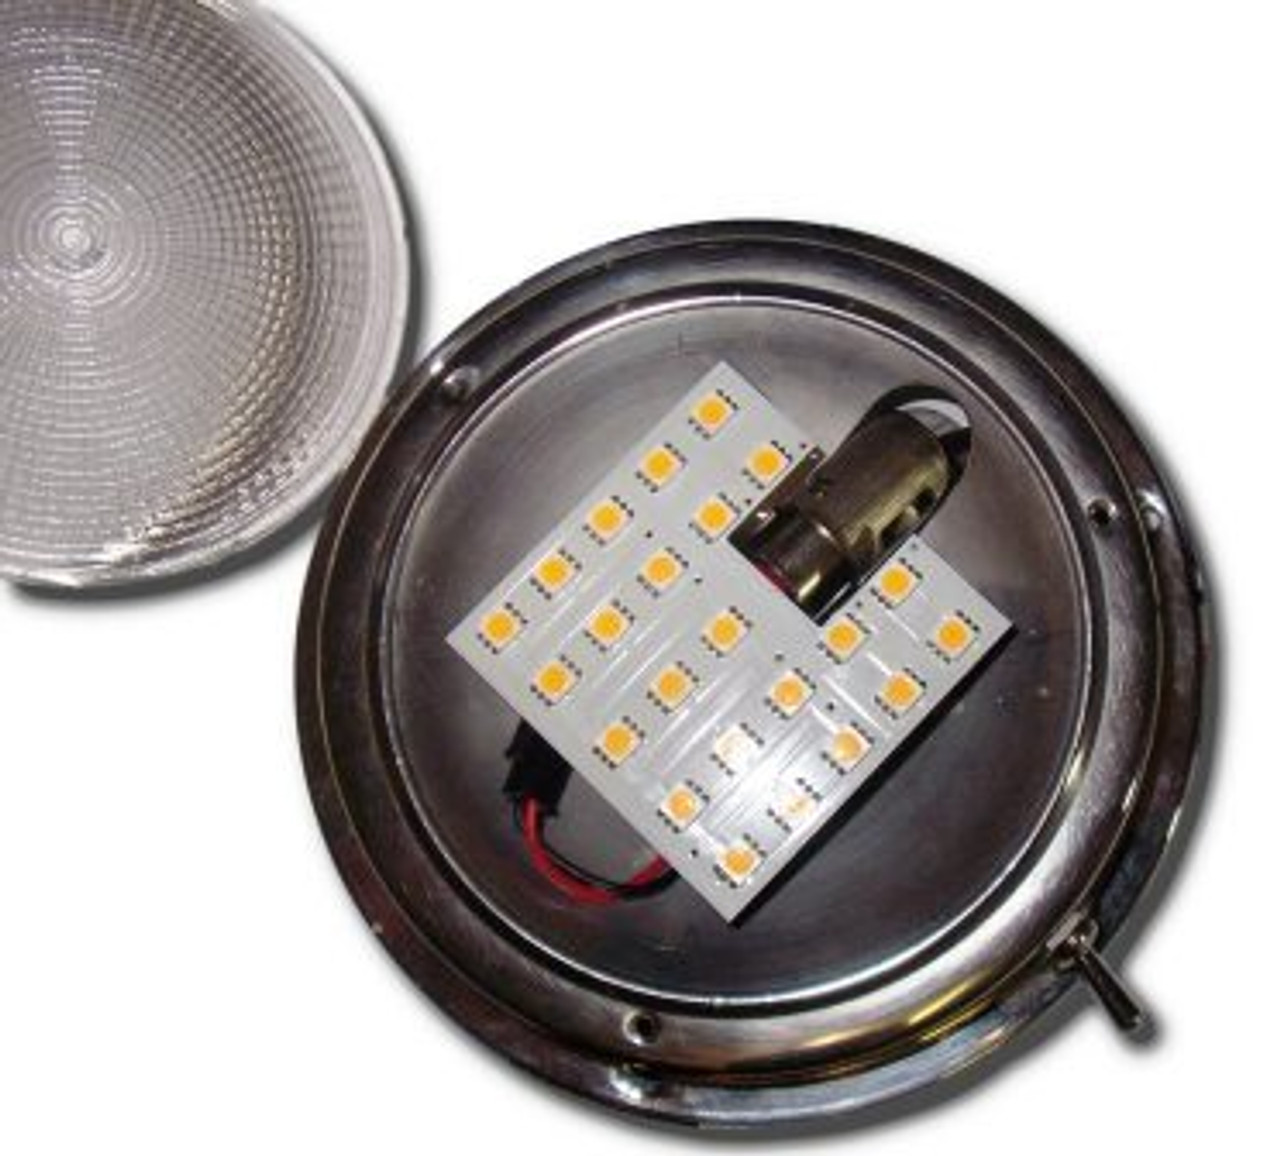 Fits round and square domelights